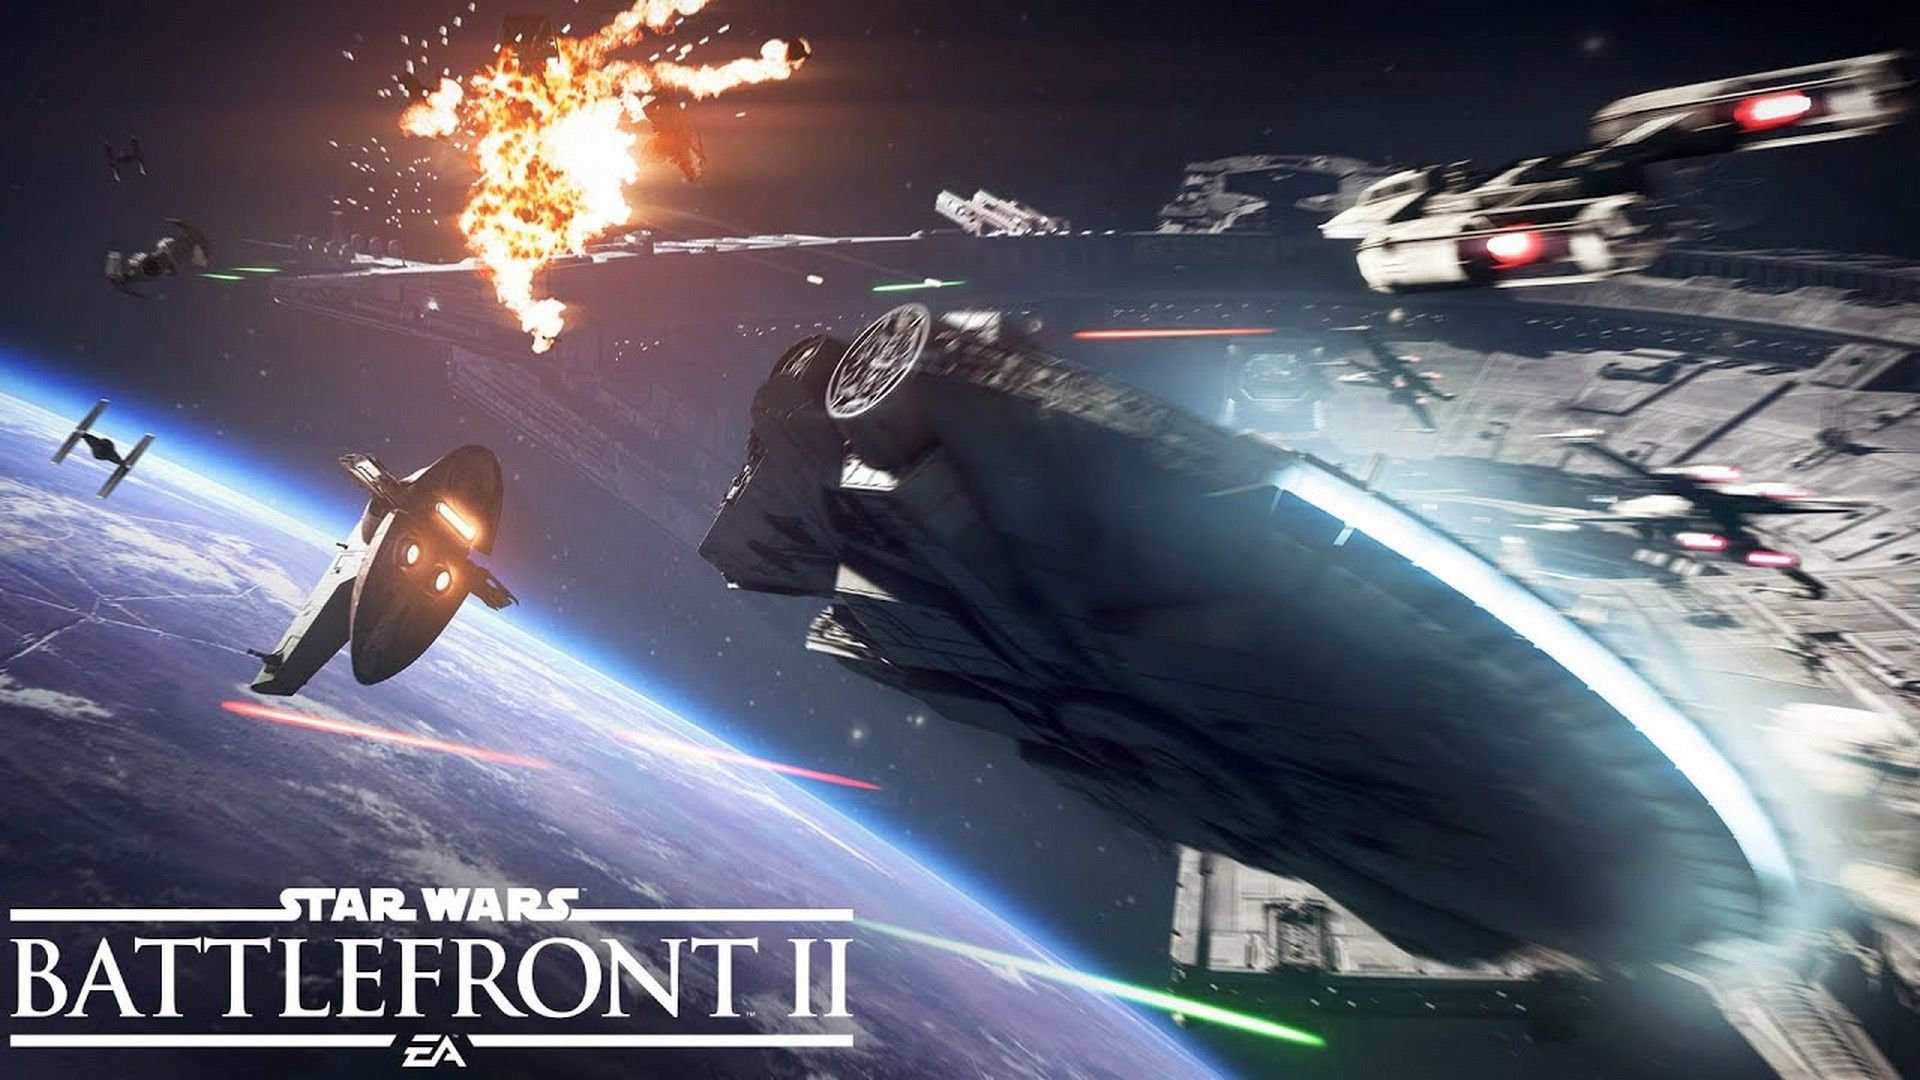 Star Wars Battlefront 2 Wallpaper Movies Free Hd Watch Online Play